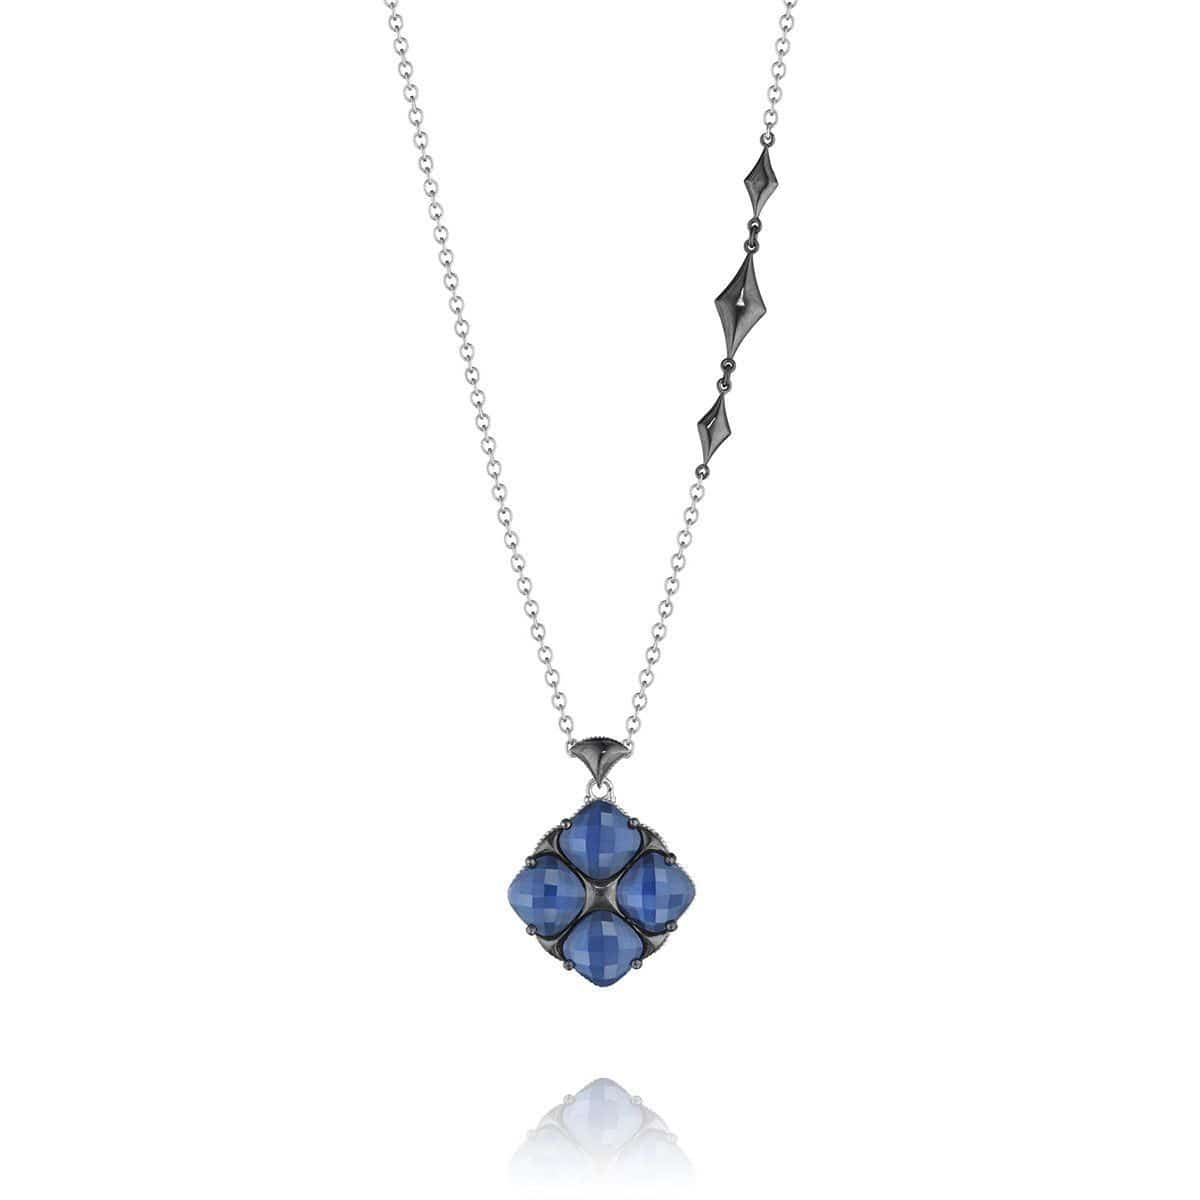 Silver 10MM Blue Quartz Over Hematite Necklace - SN16335-Tacori-Renee Taylor Gallery